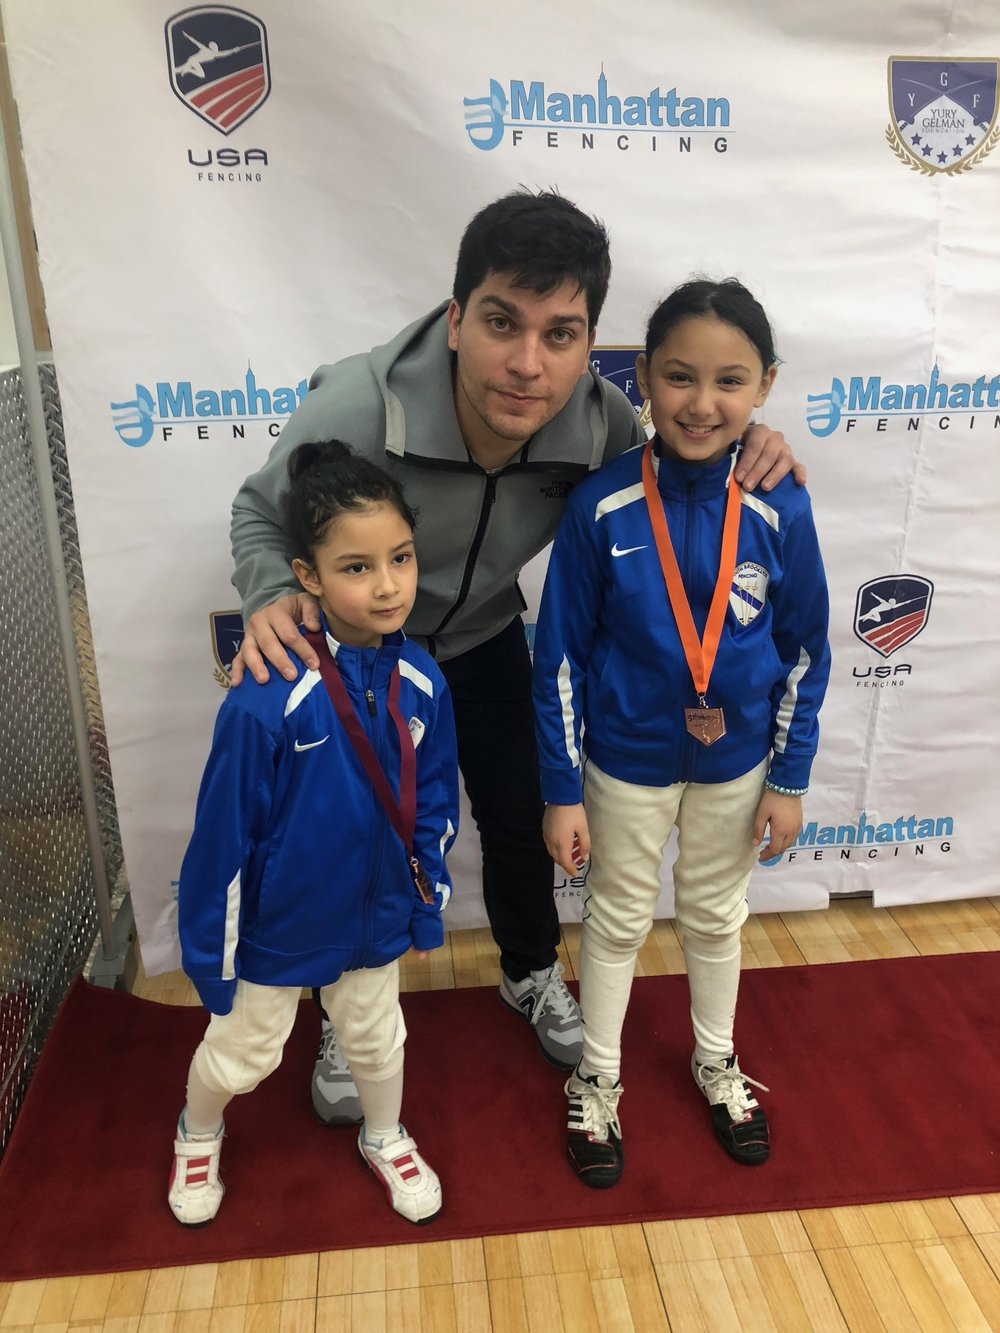 Manhattan Fencing Center Youth  Alex Lambrechts 8th place Y10 women's Emily Cascone 3rd place Y10 women's December 2nd 2018